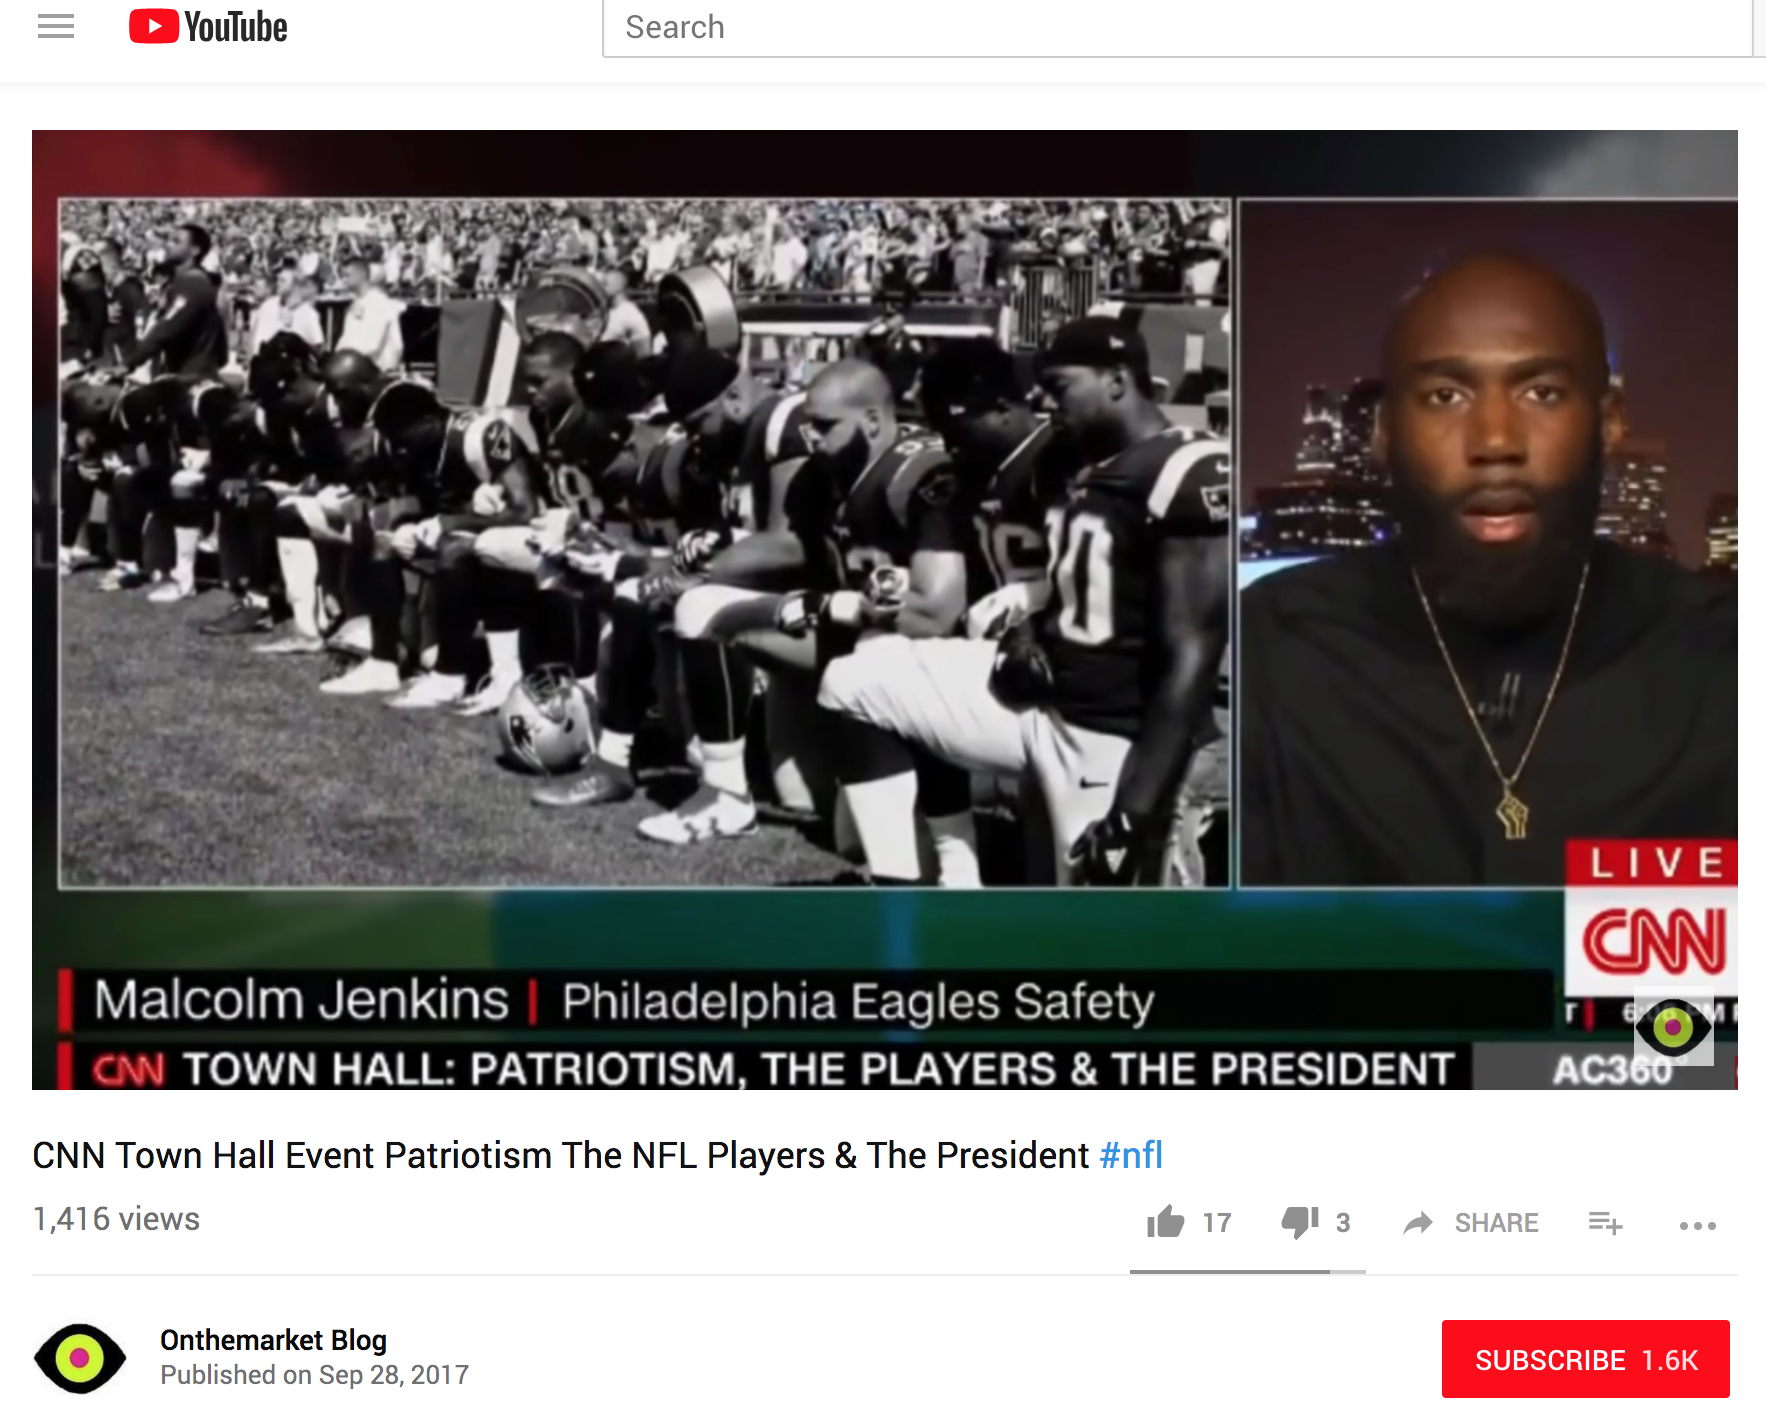 CNN Town Hall Event: Patriotism - CNN Town Hall Event Patriotism The NFL Players & The President Hosted by Anderson Cooper